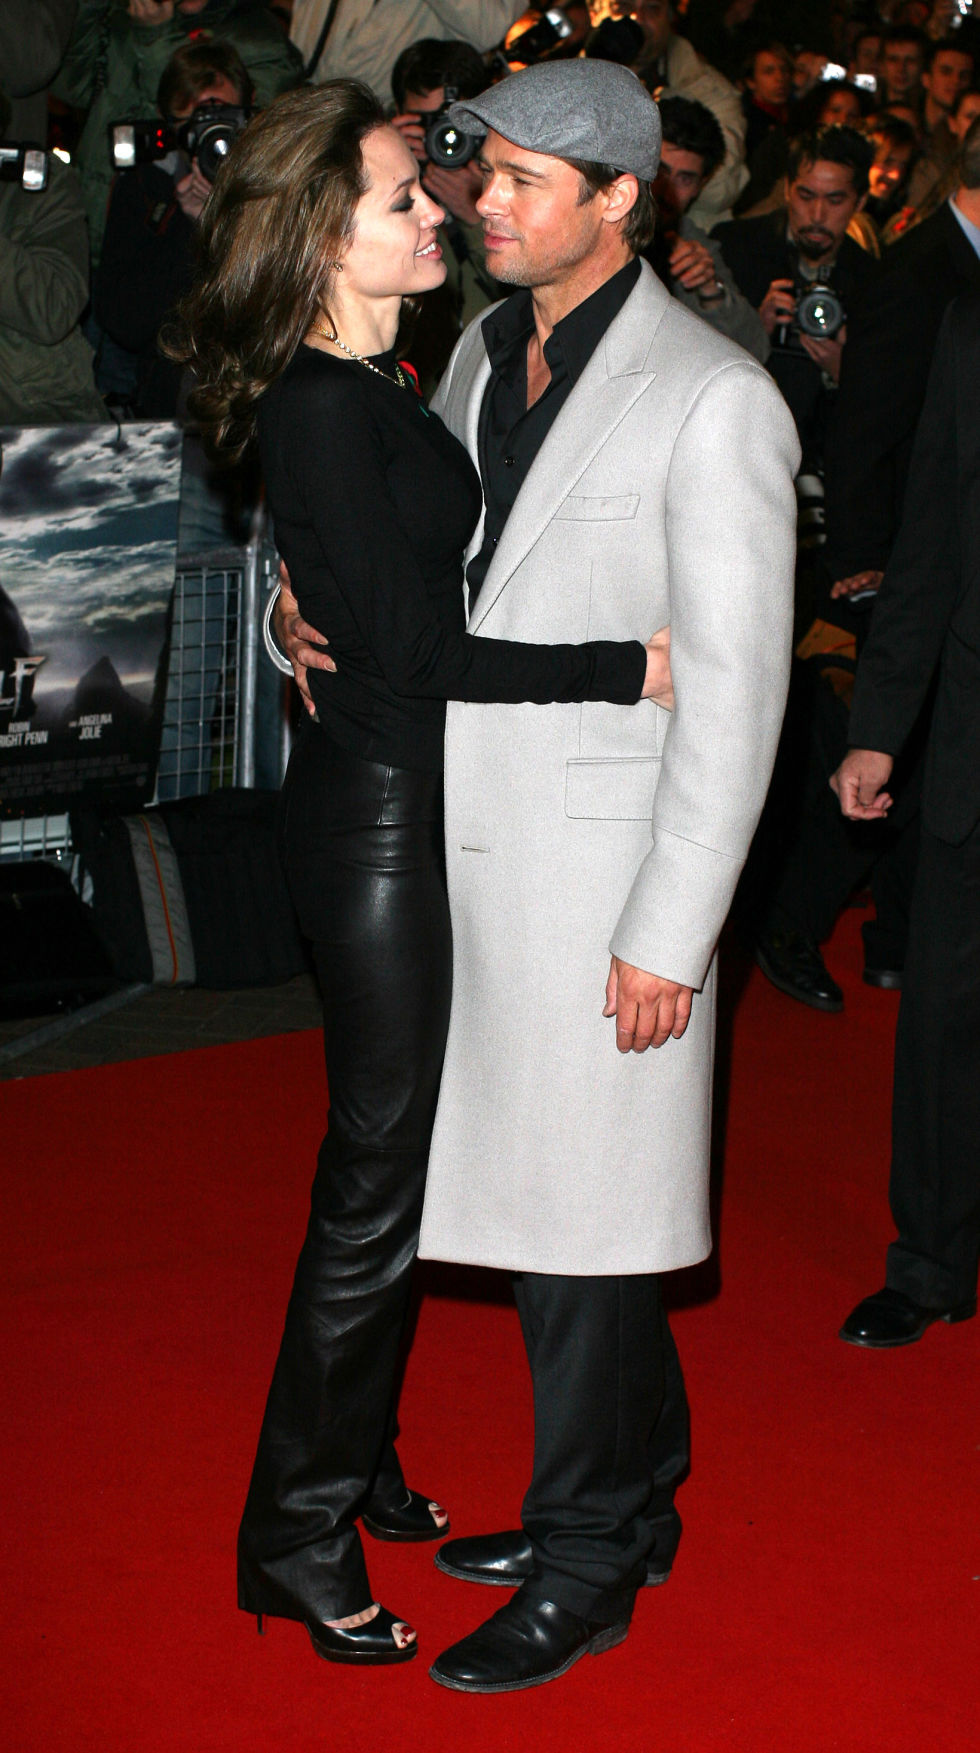 At the London premiere of Beowulf.